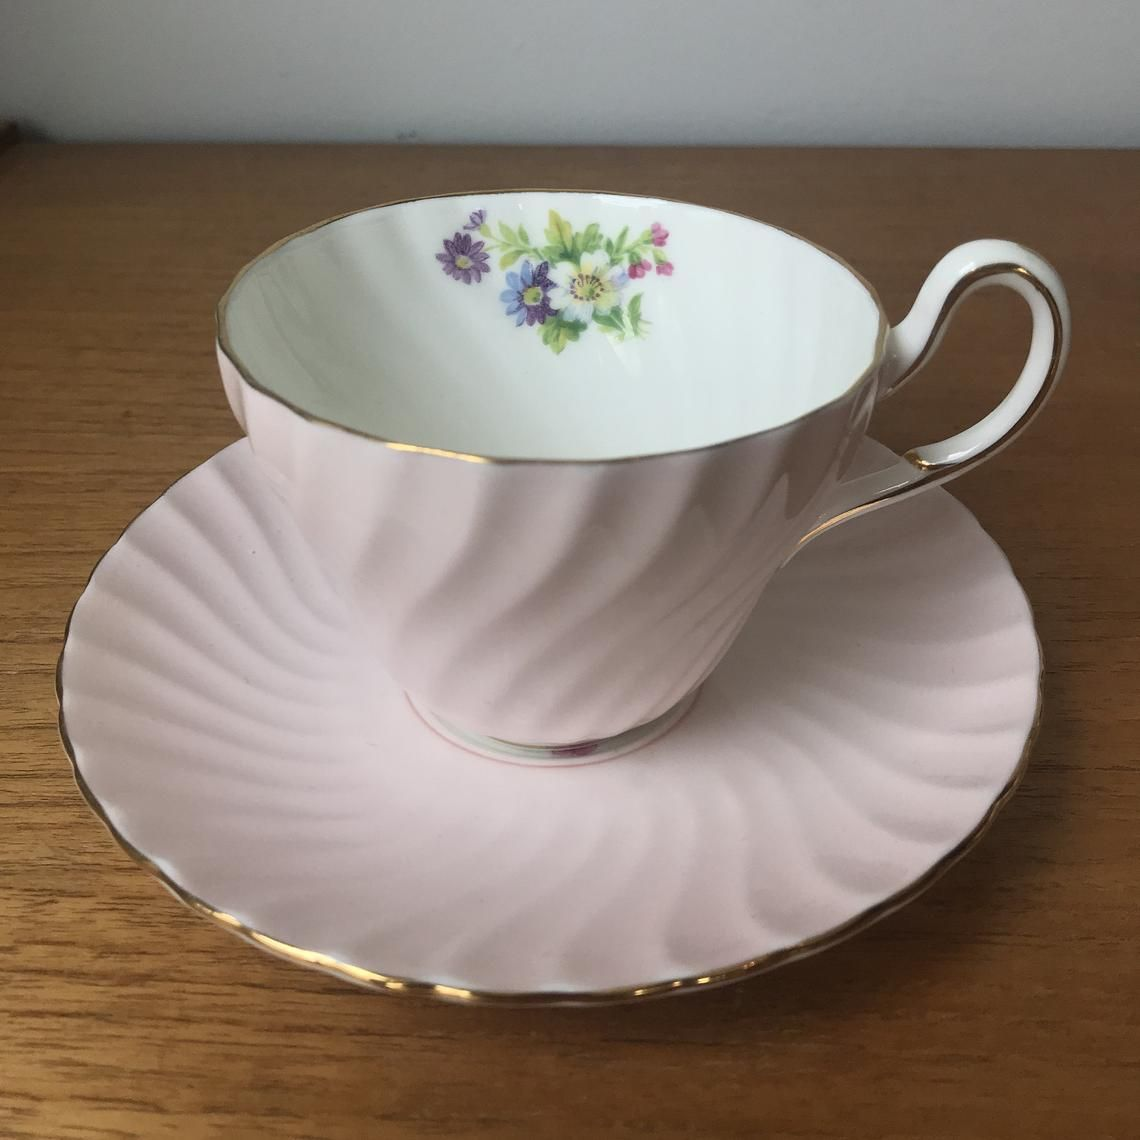 Pastel Pink Tea Cup and Saucer, English E B Foley Teacup and Saucer, Swirl Shape Bone China